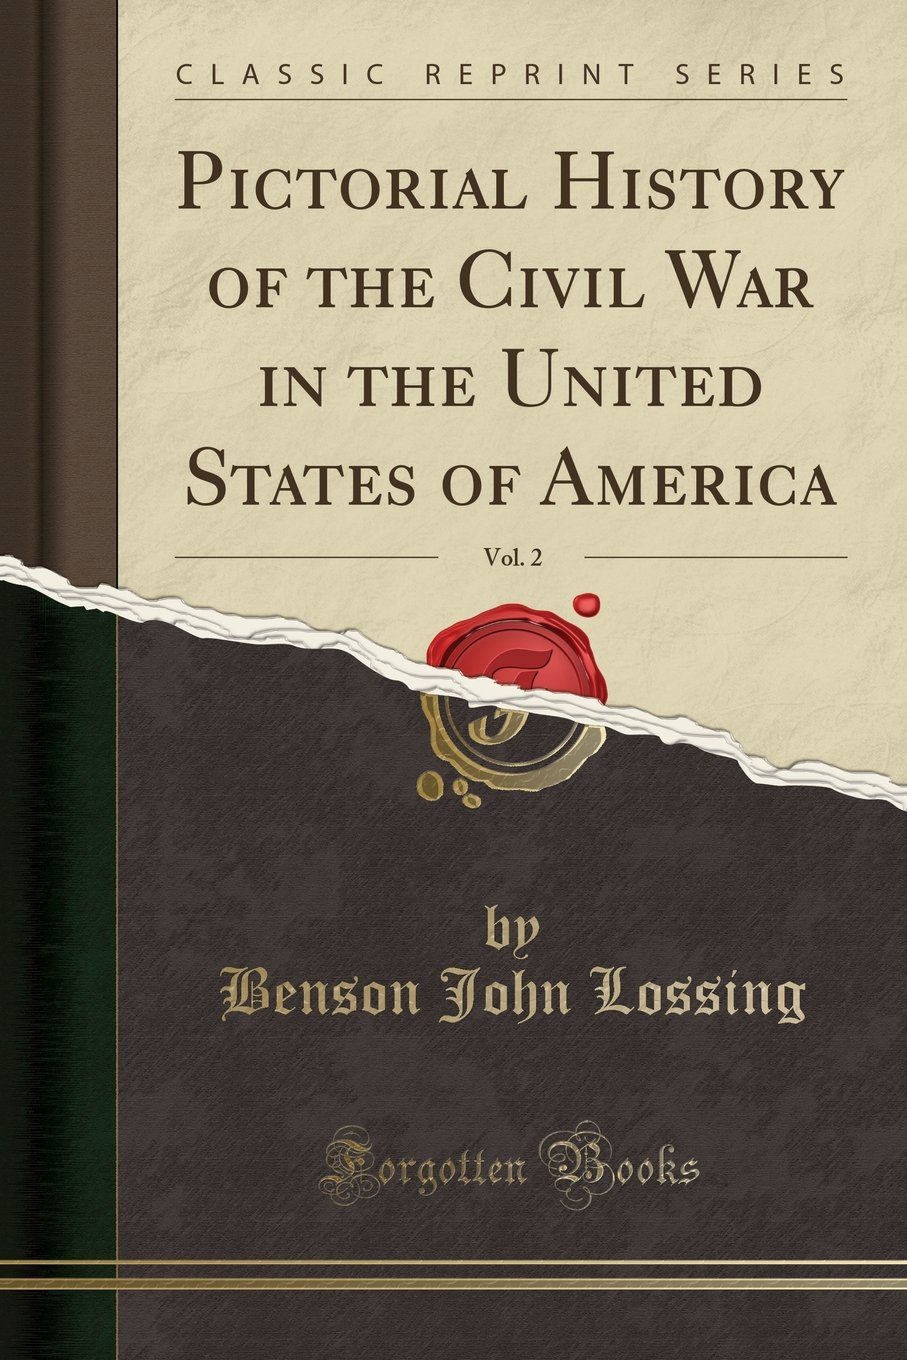 Pictorial History of the Civil War in the United States of America, Vol. 2 (Classic Reprint) ebook